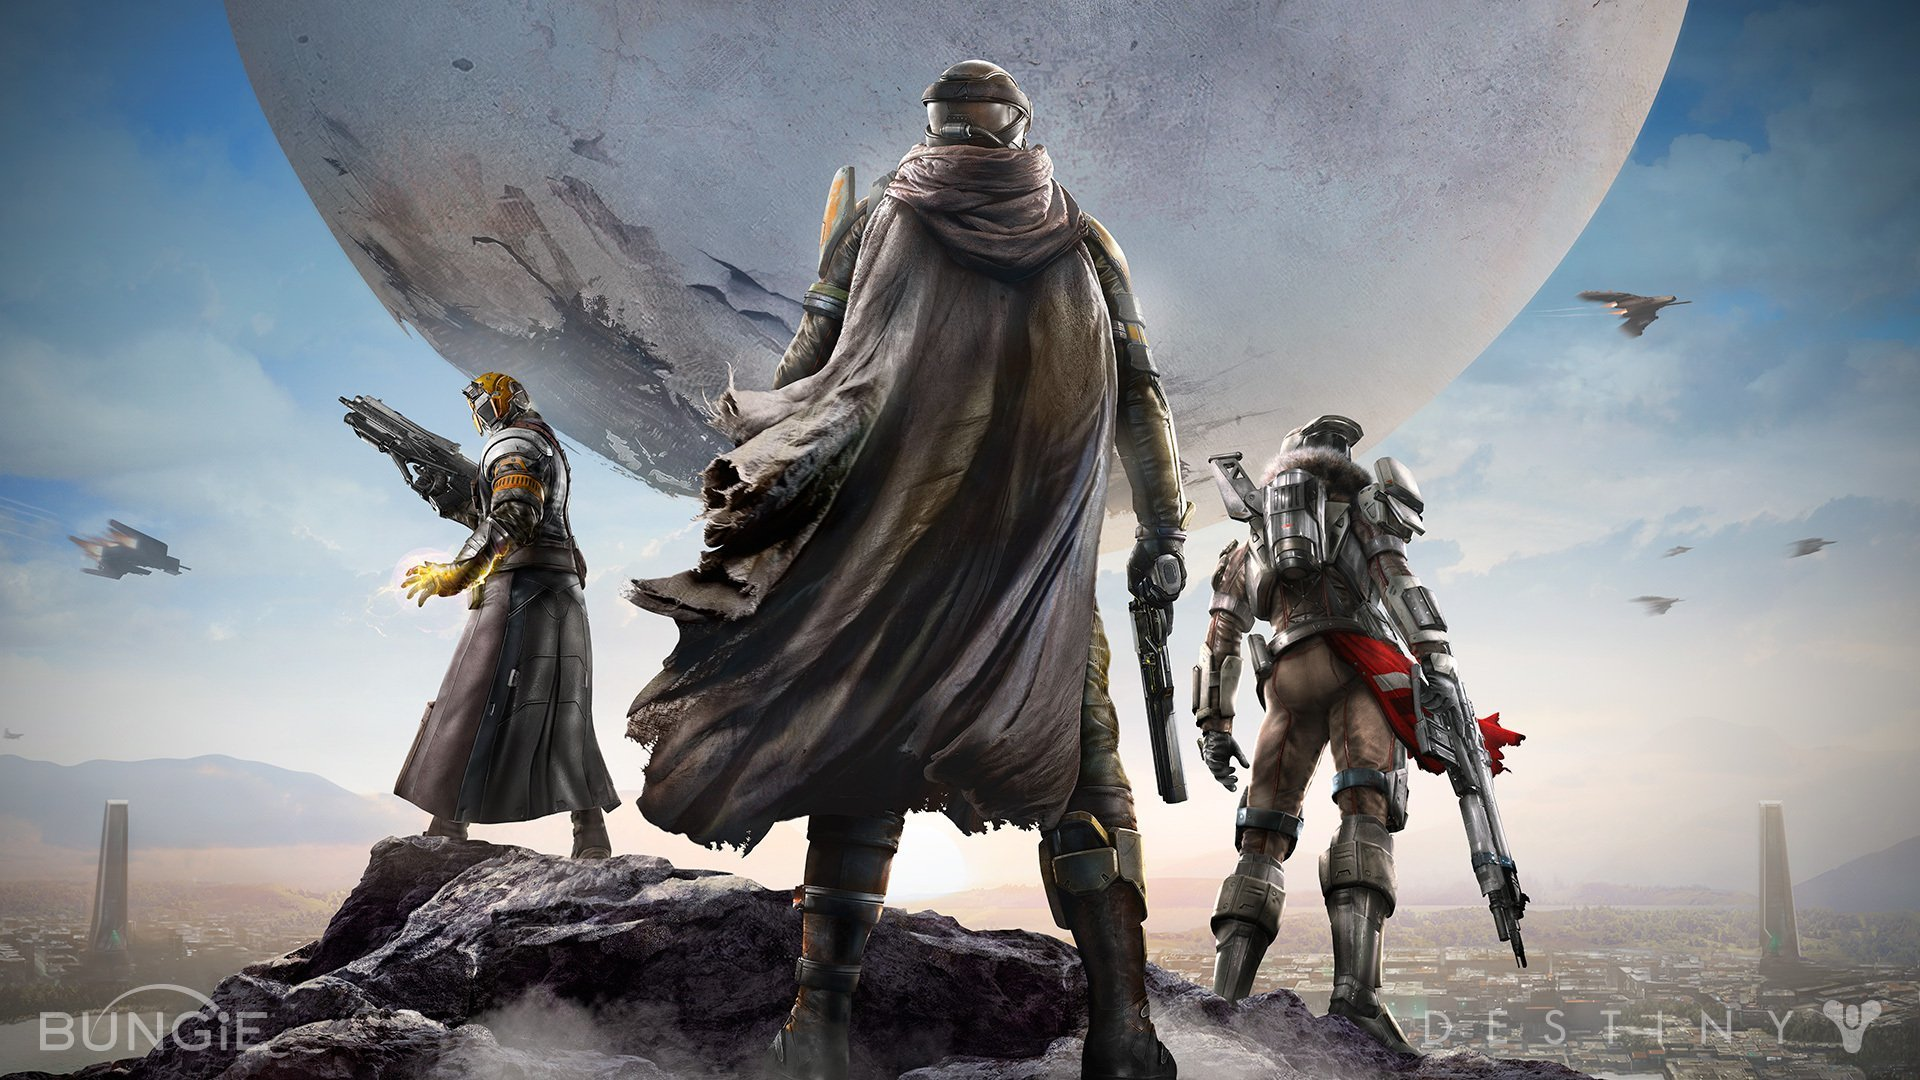 Free download Destiny wallpaper ID:394417 full hd for computer